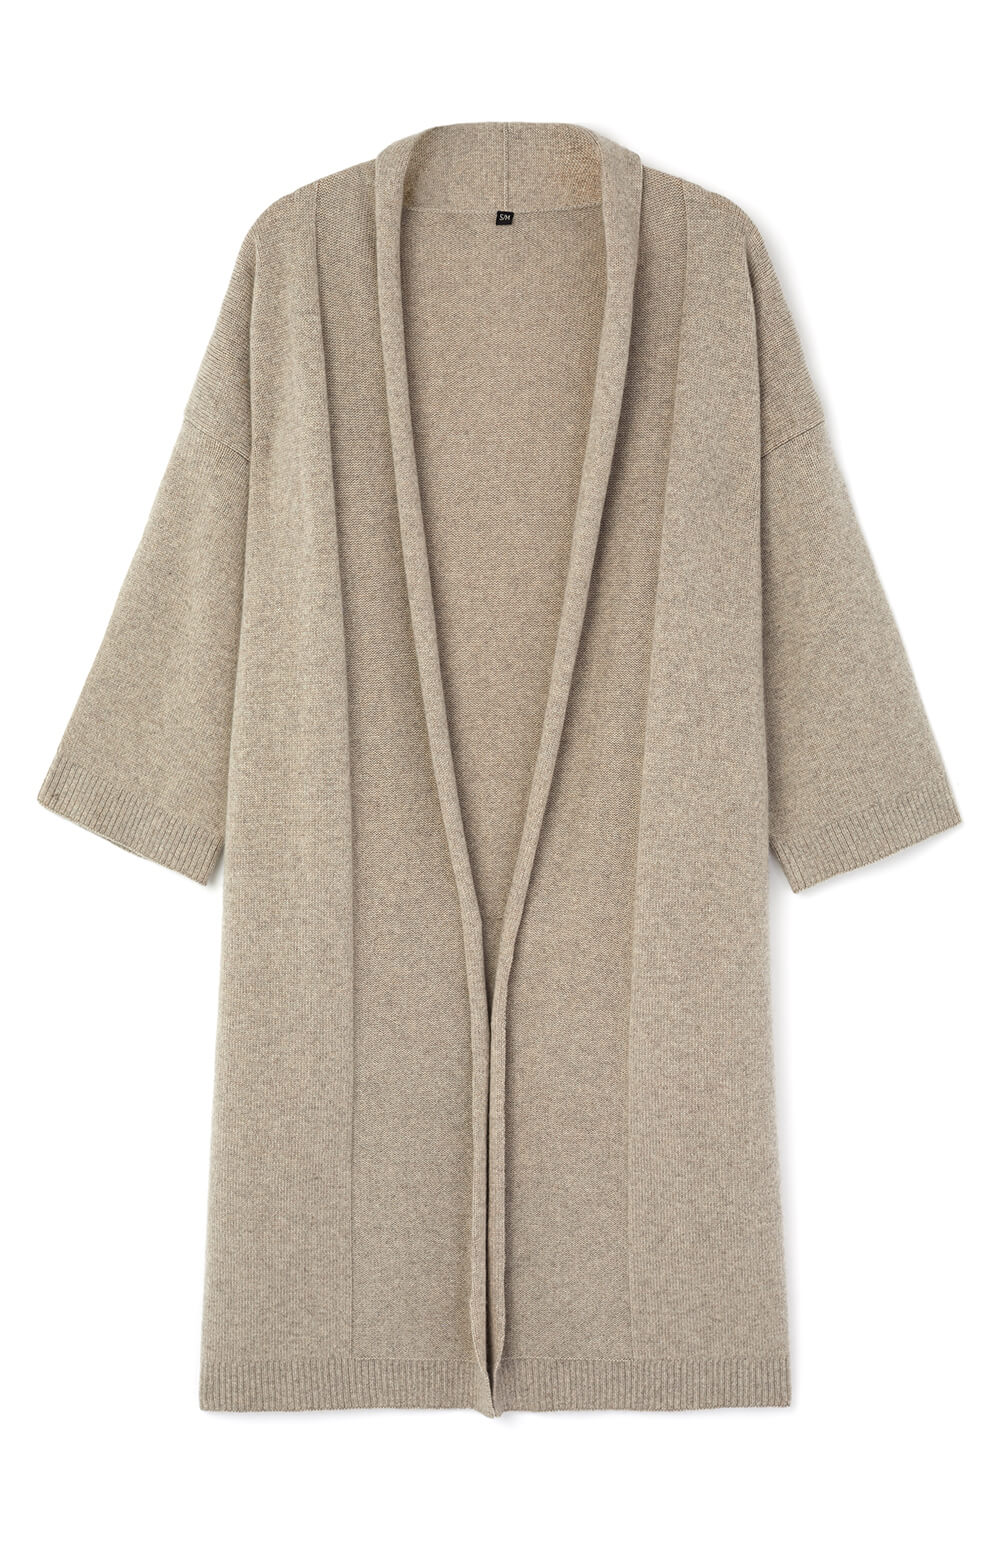 Cashmere Robe (crob) - Fawn | Bonsoir of London